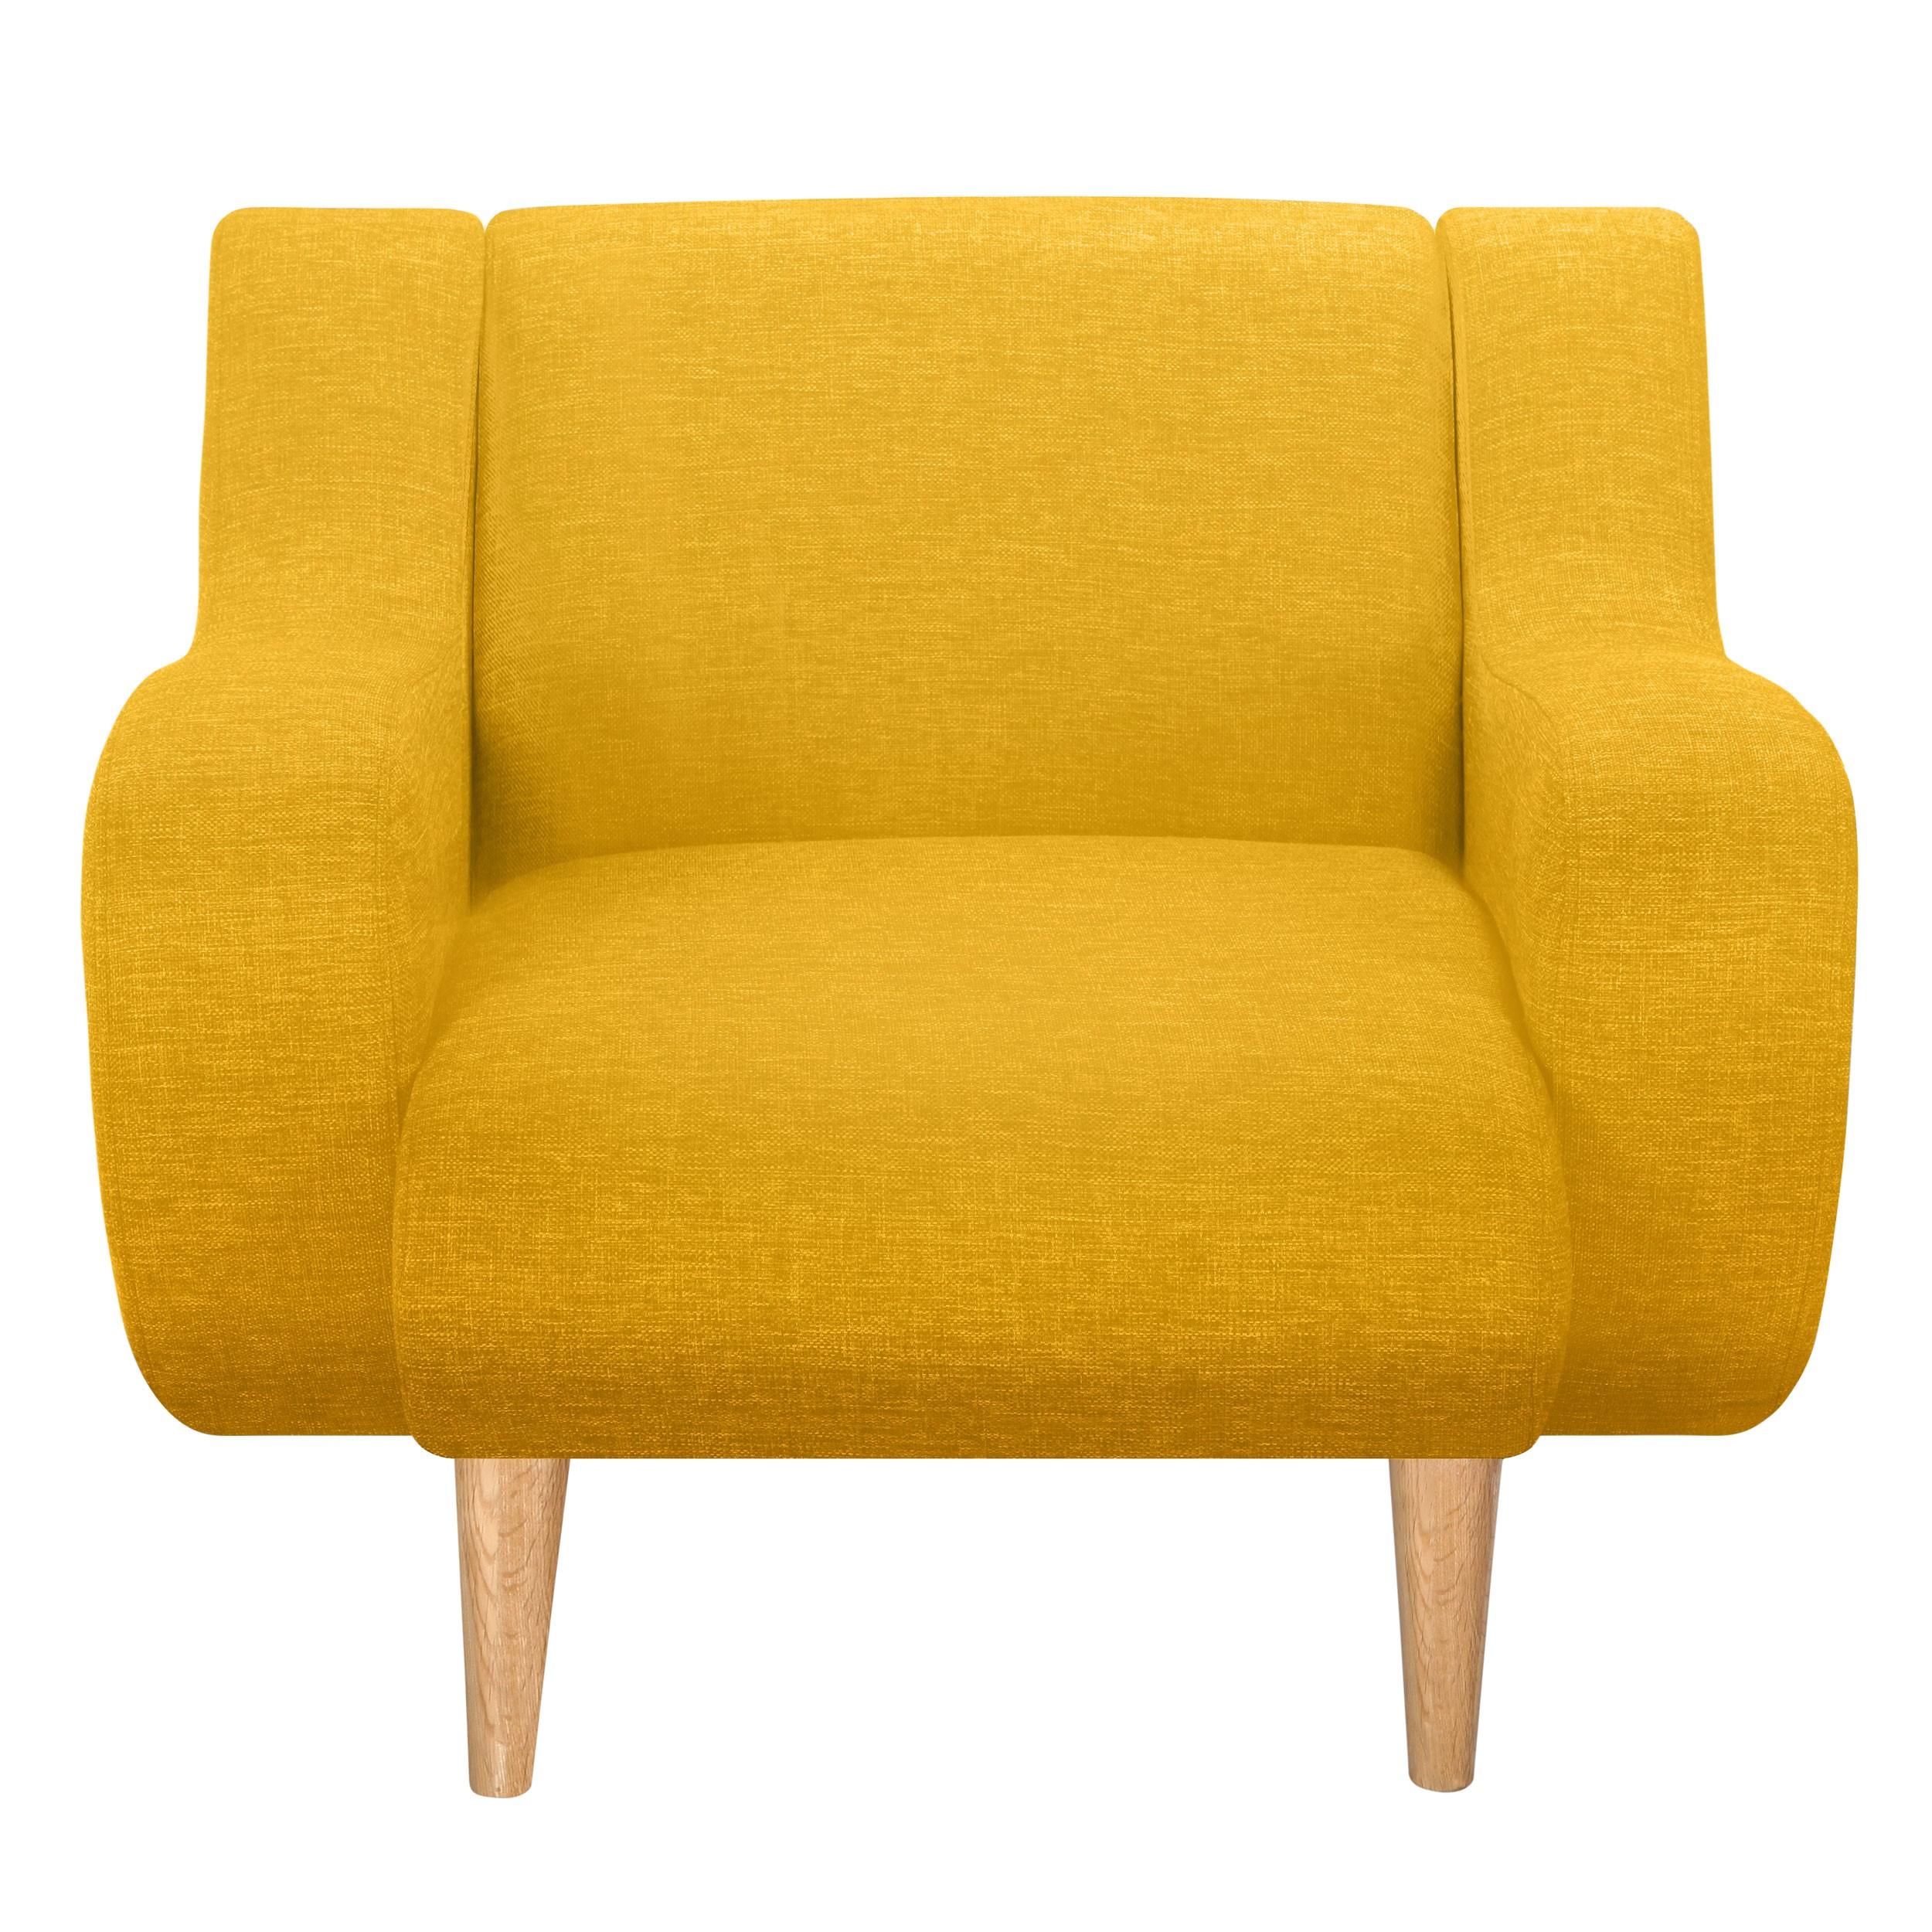 fauteuil stockholm jaune installez nos fauteuils stockholm jaunes chez vous rdv d co. Black Bedroom Furniture Sets. Home Design Ideas